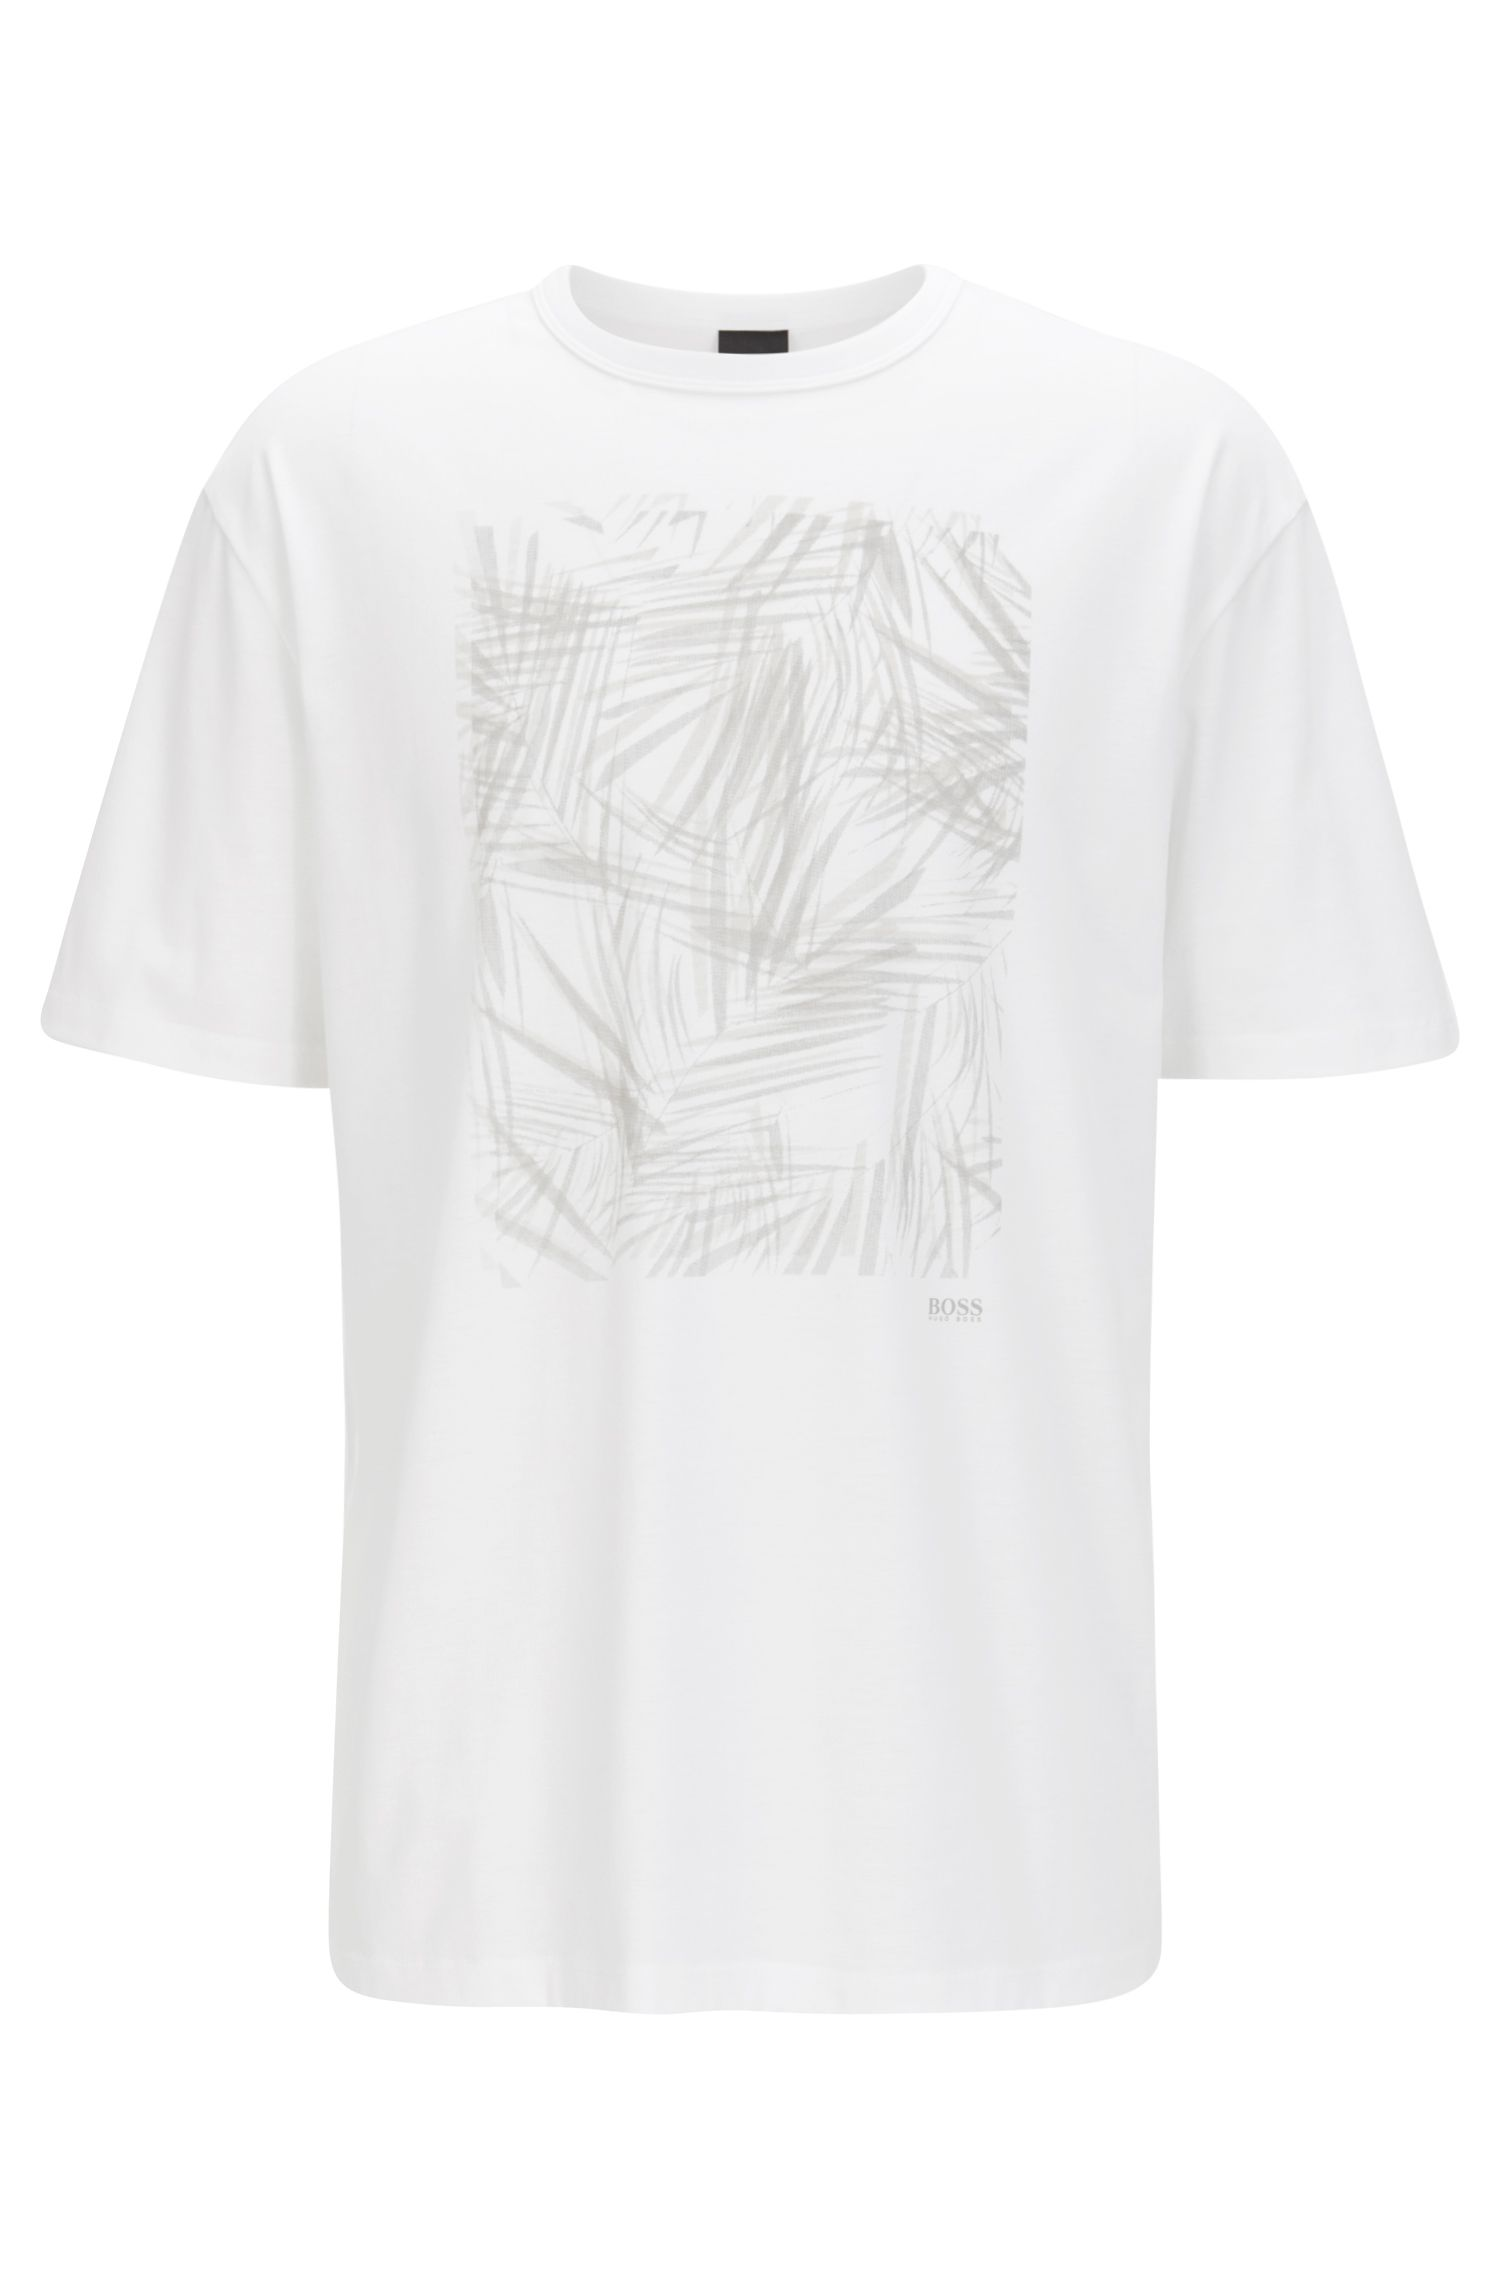 Printed crew-neck T-shirt in mercerised single jersey